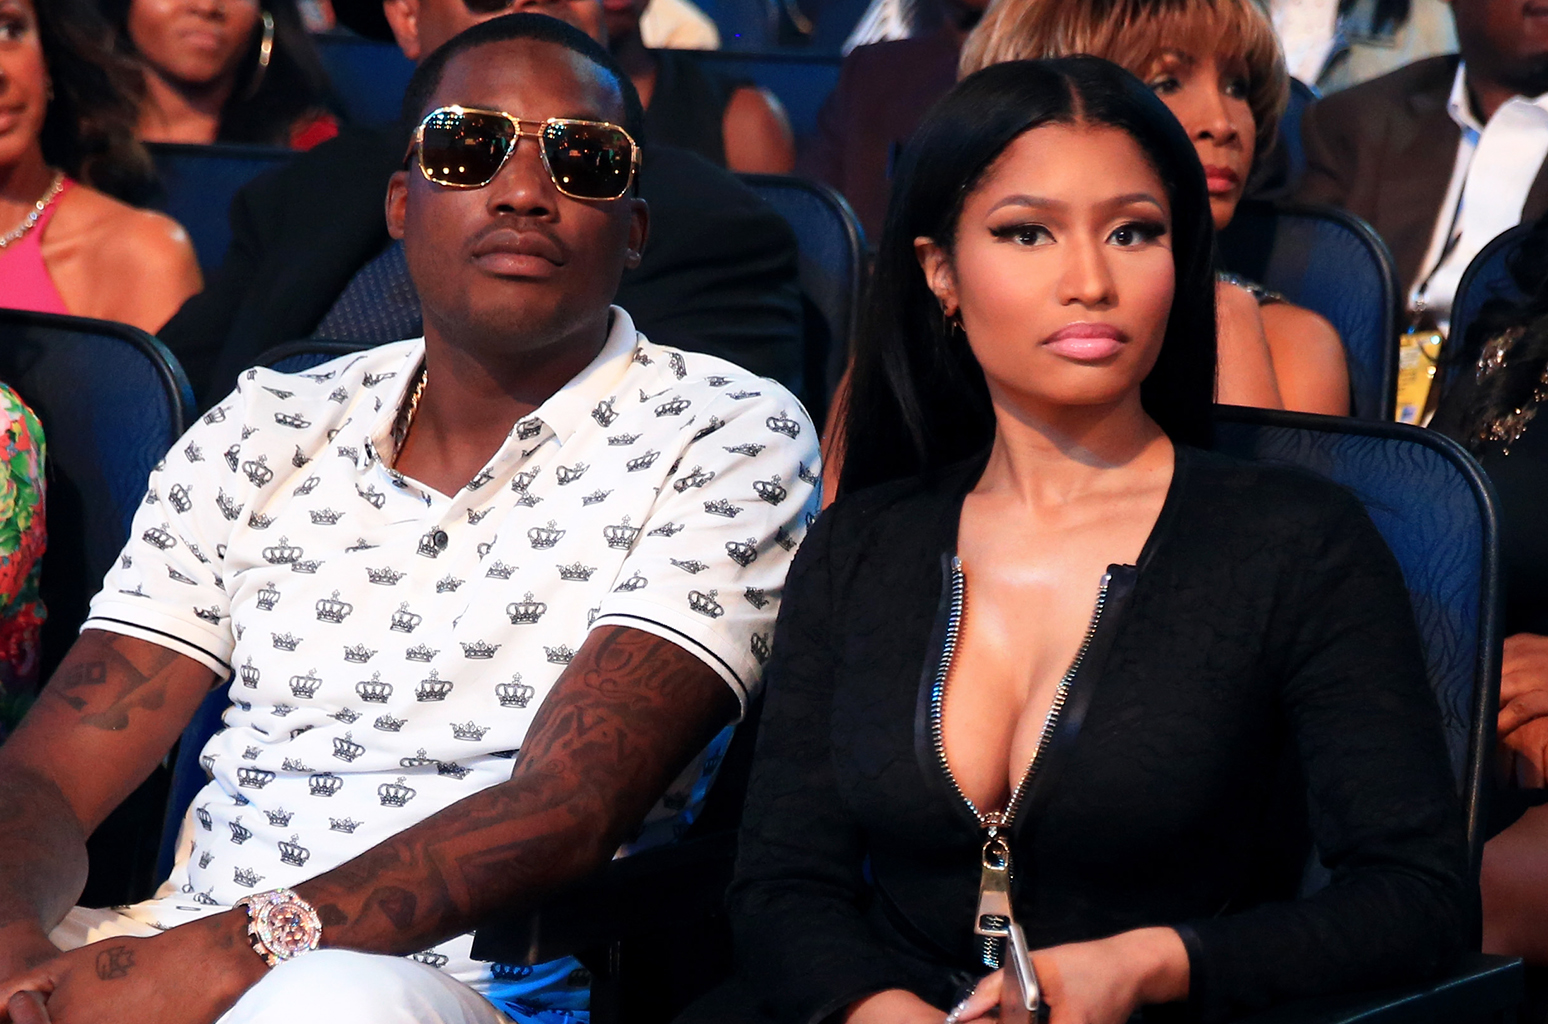 Nicki Minaj says she's got secrets to tell about Meek Mill